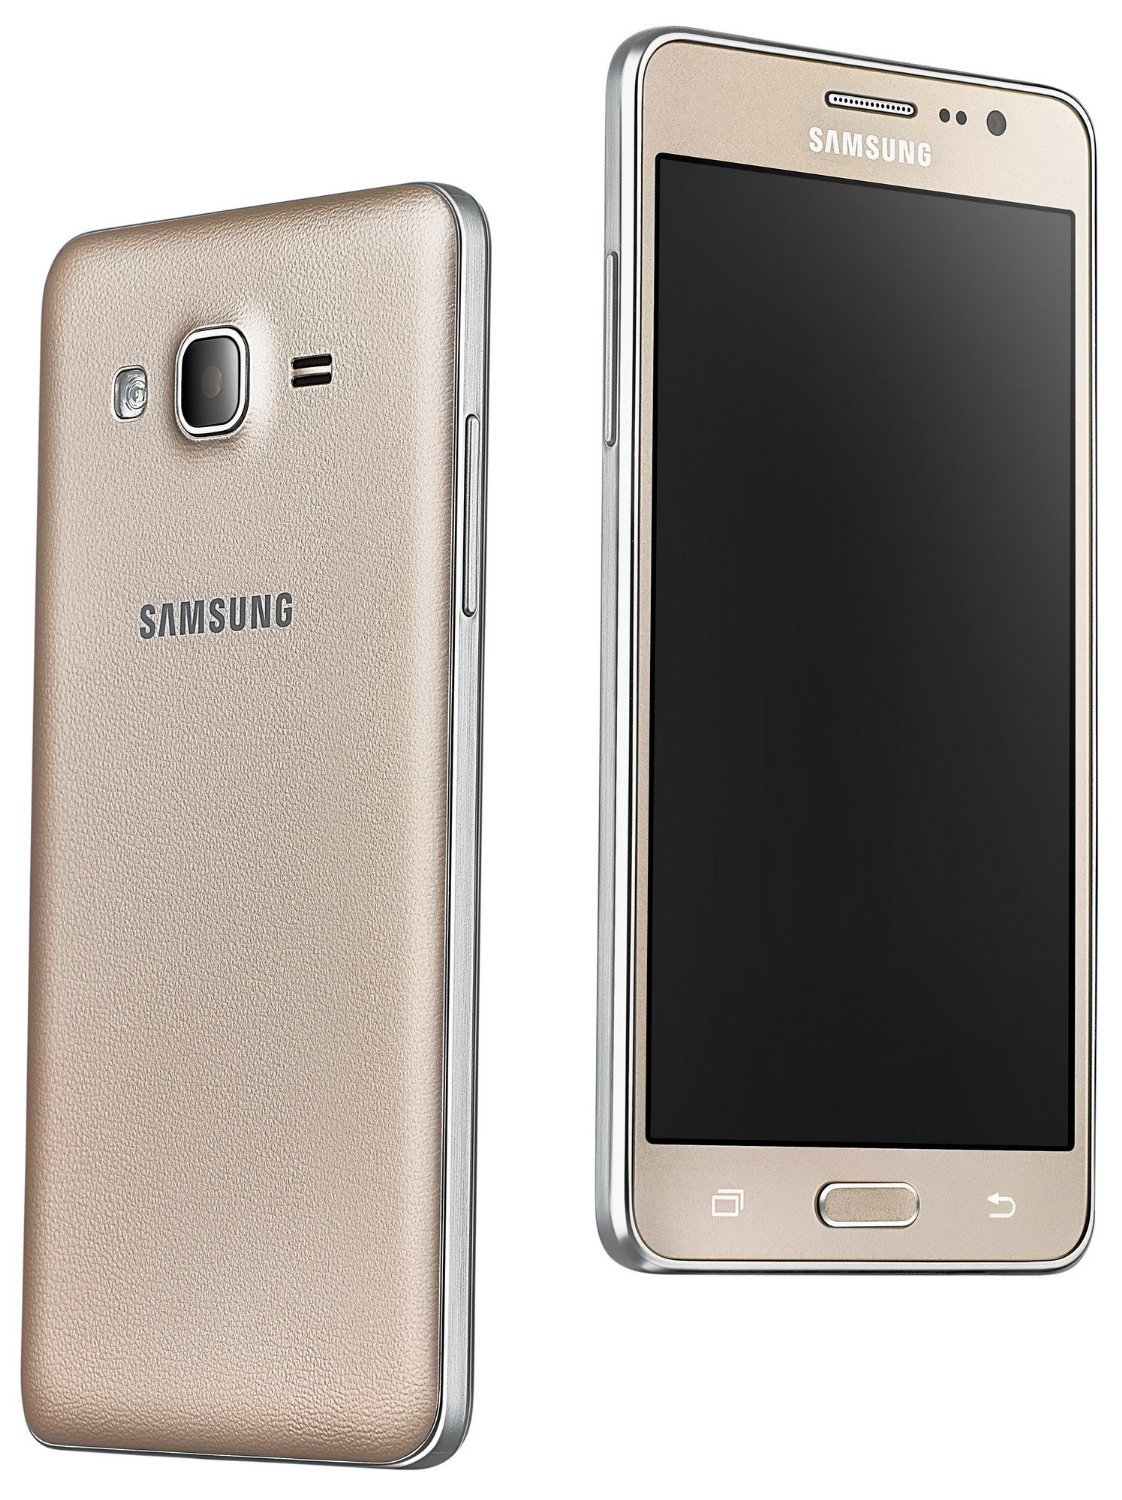 Samsung Launches The Galaxy On5 Pro And Galaxy On7 Pro In